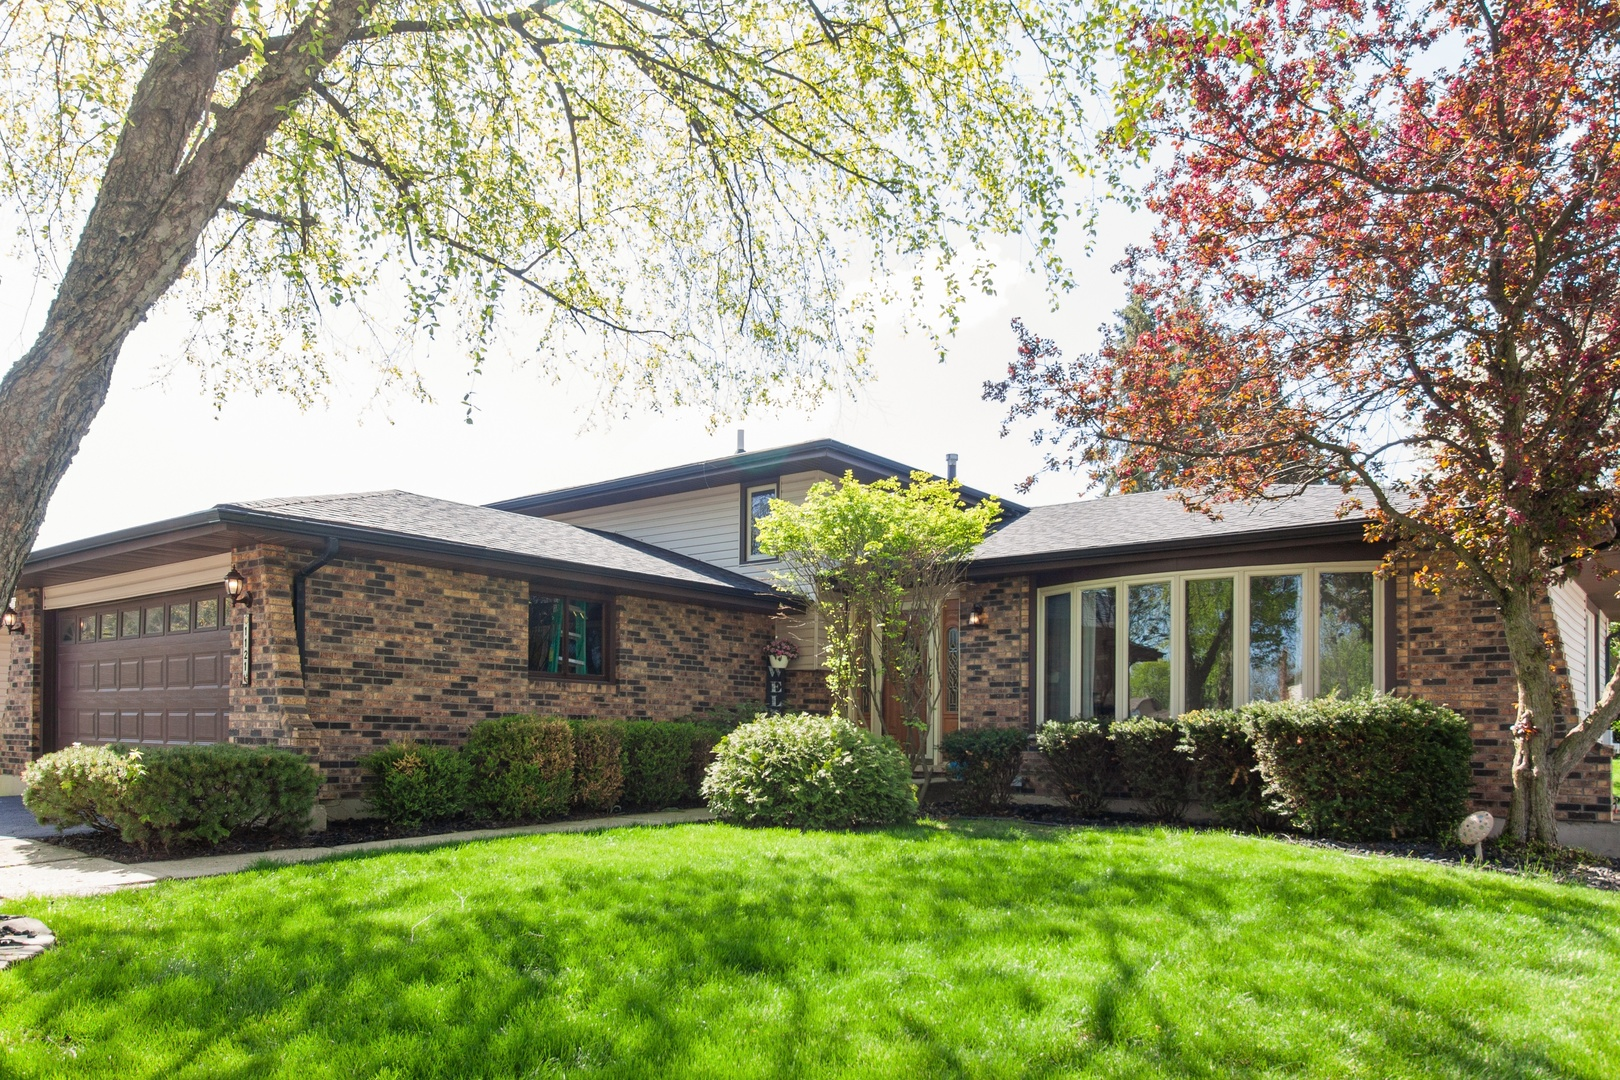 Photo for 1121 Hobart Avenue, DOWNERS GROVE, IL 60516 (MLS # 10411839)